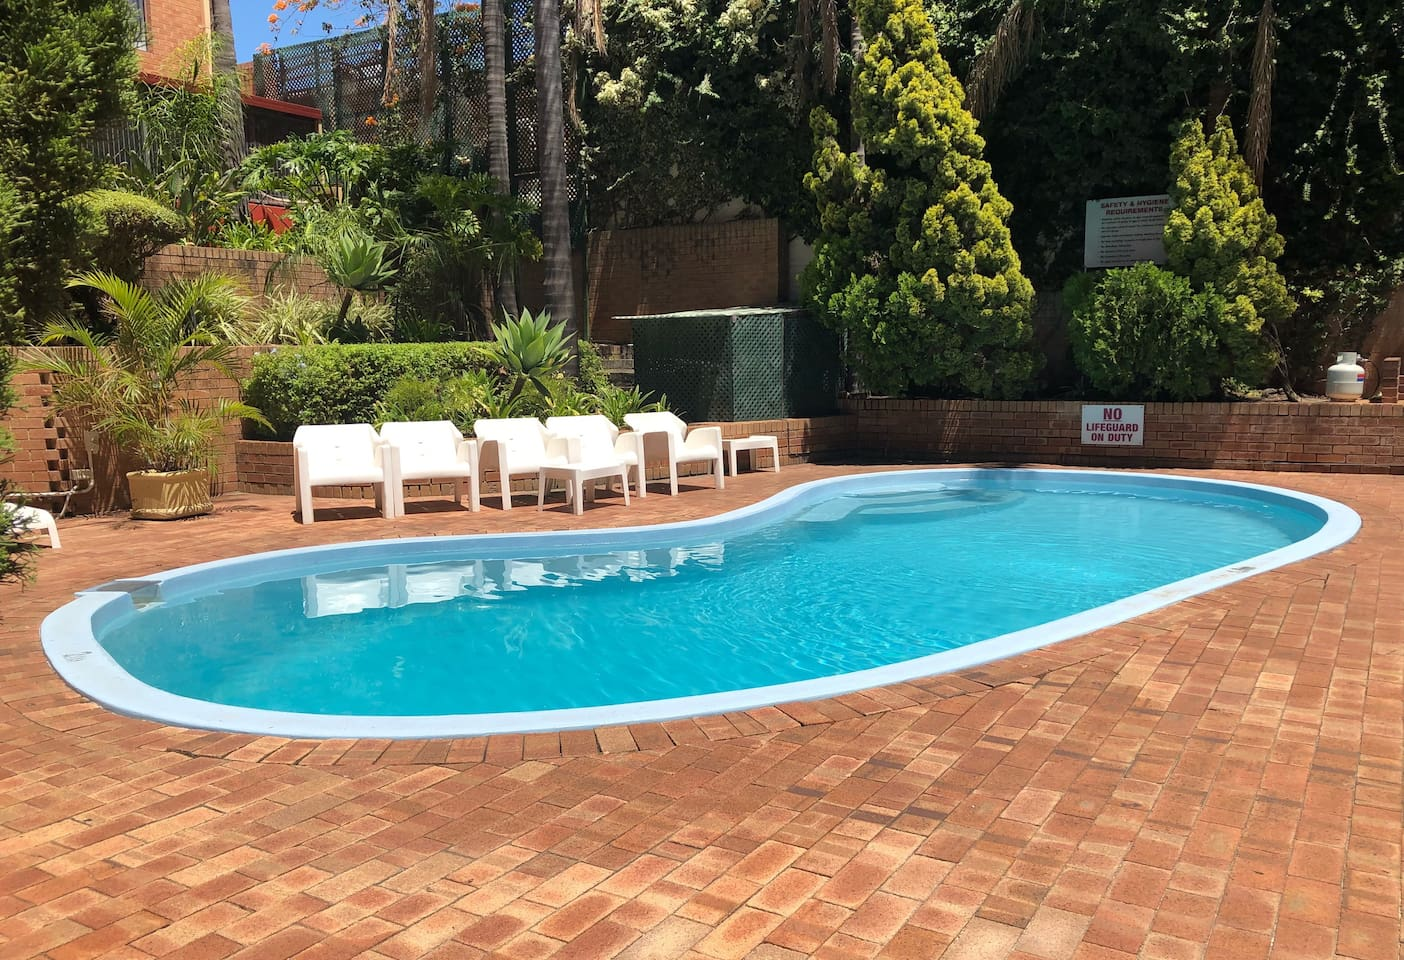 Swimming pool perfect for a cooling relaxing dip after exploring Perth's many attractions